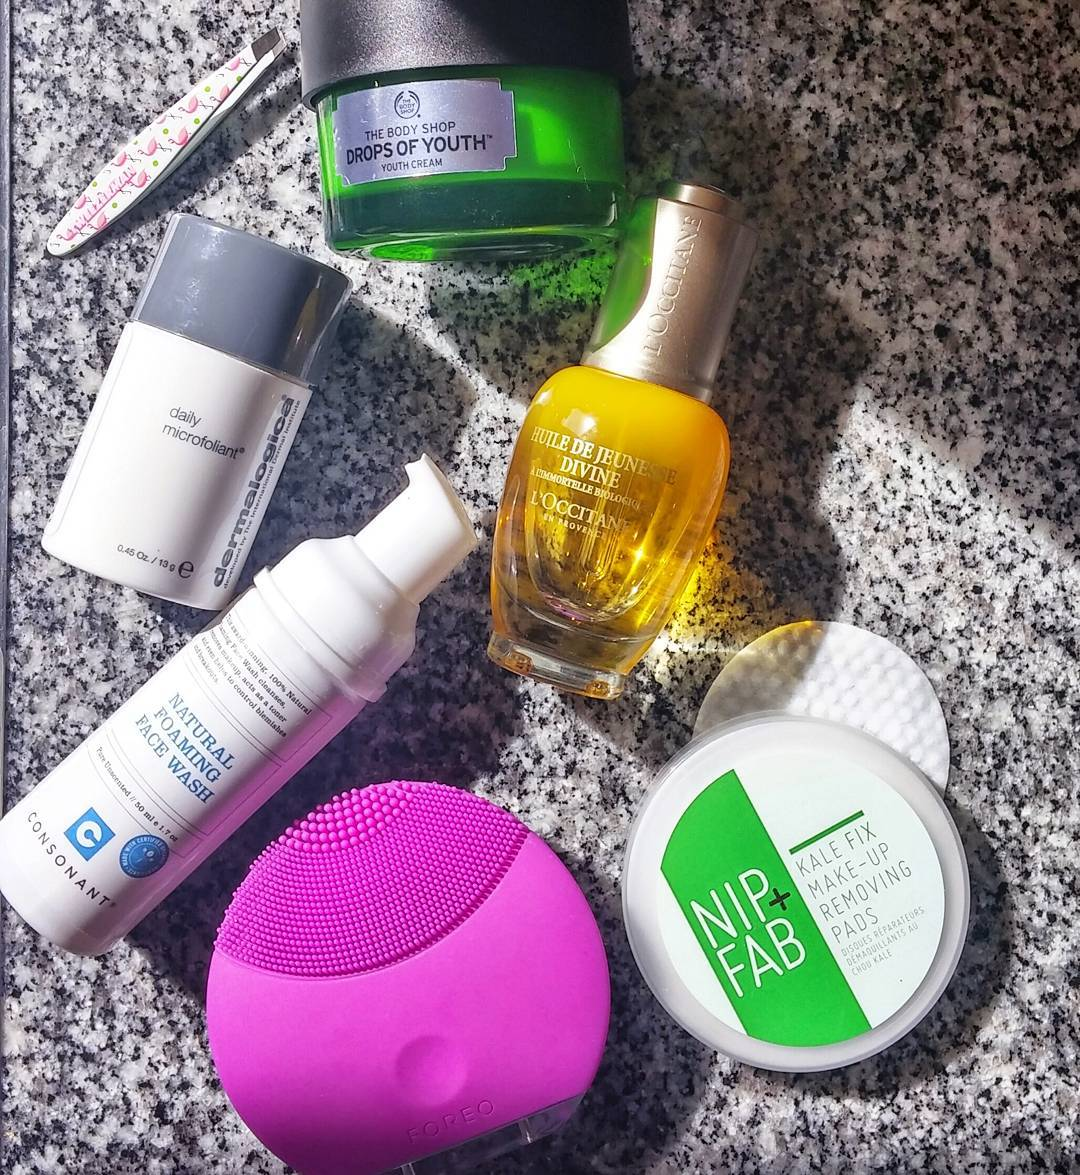 Travel skincare essentials that have made this trip #beautiful: @tweezermanca mini flamingo print tweezers; @thebodyshop Drops Of Youth cream; @dermalogicacdn Daily Microfoliant; @loccitane_ca Fleur Immortelle Divine Youth Oil; @consonantlife Natural Foaminf Face Wash; @foreo Face Brush; @nipandfab Kale Fix Makeup Removing Pads #LifeBlood